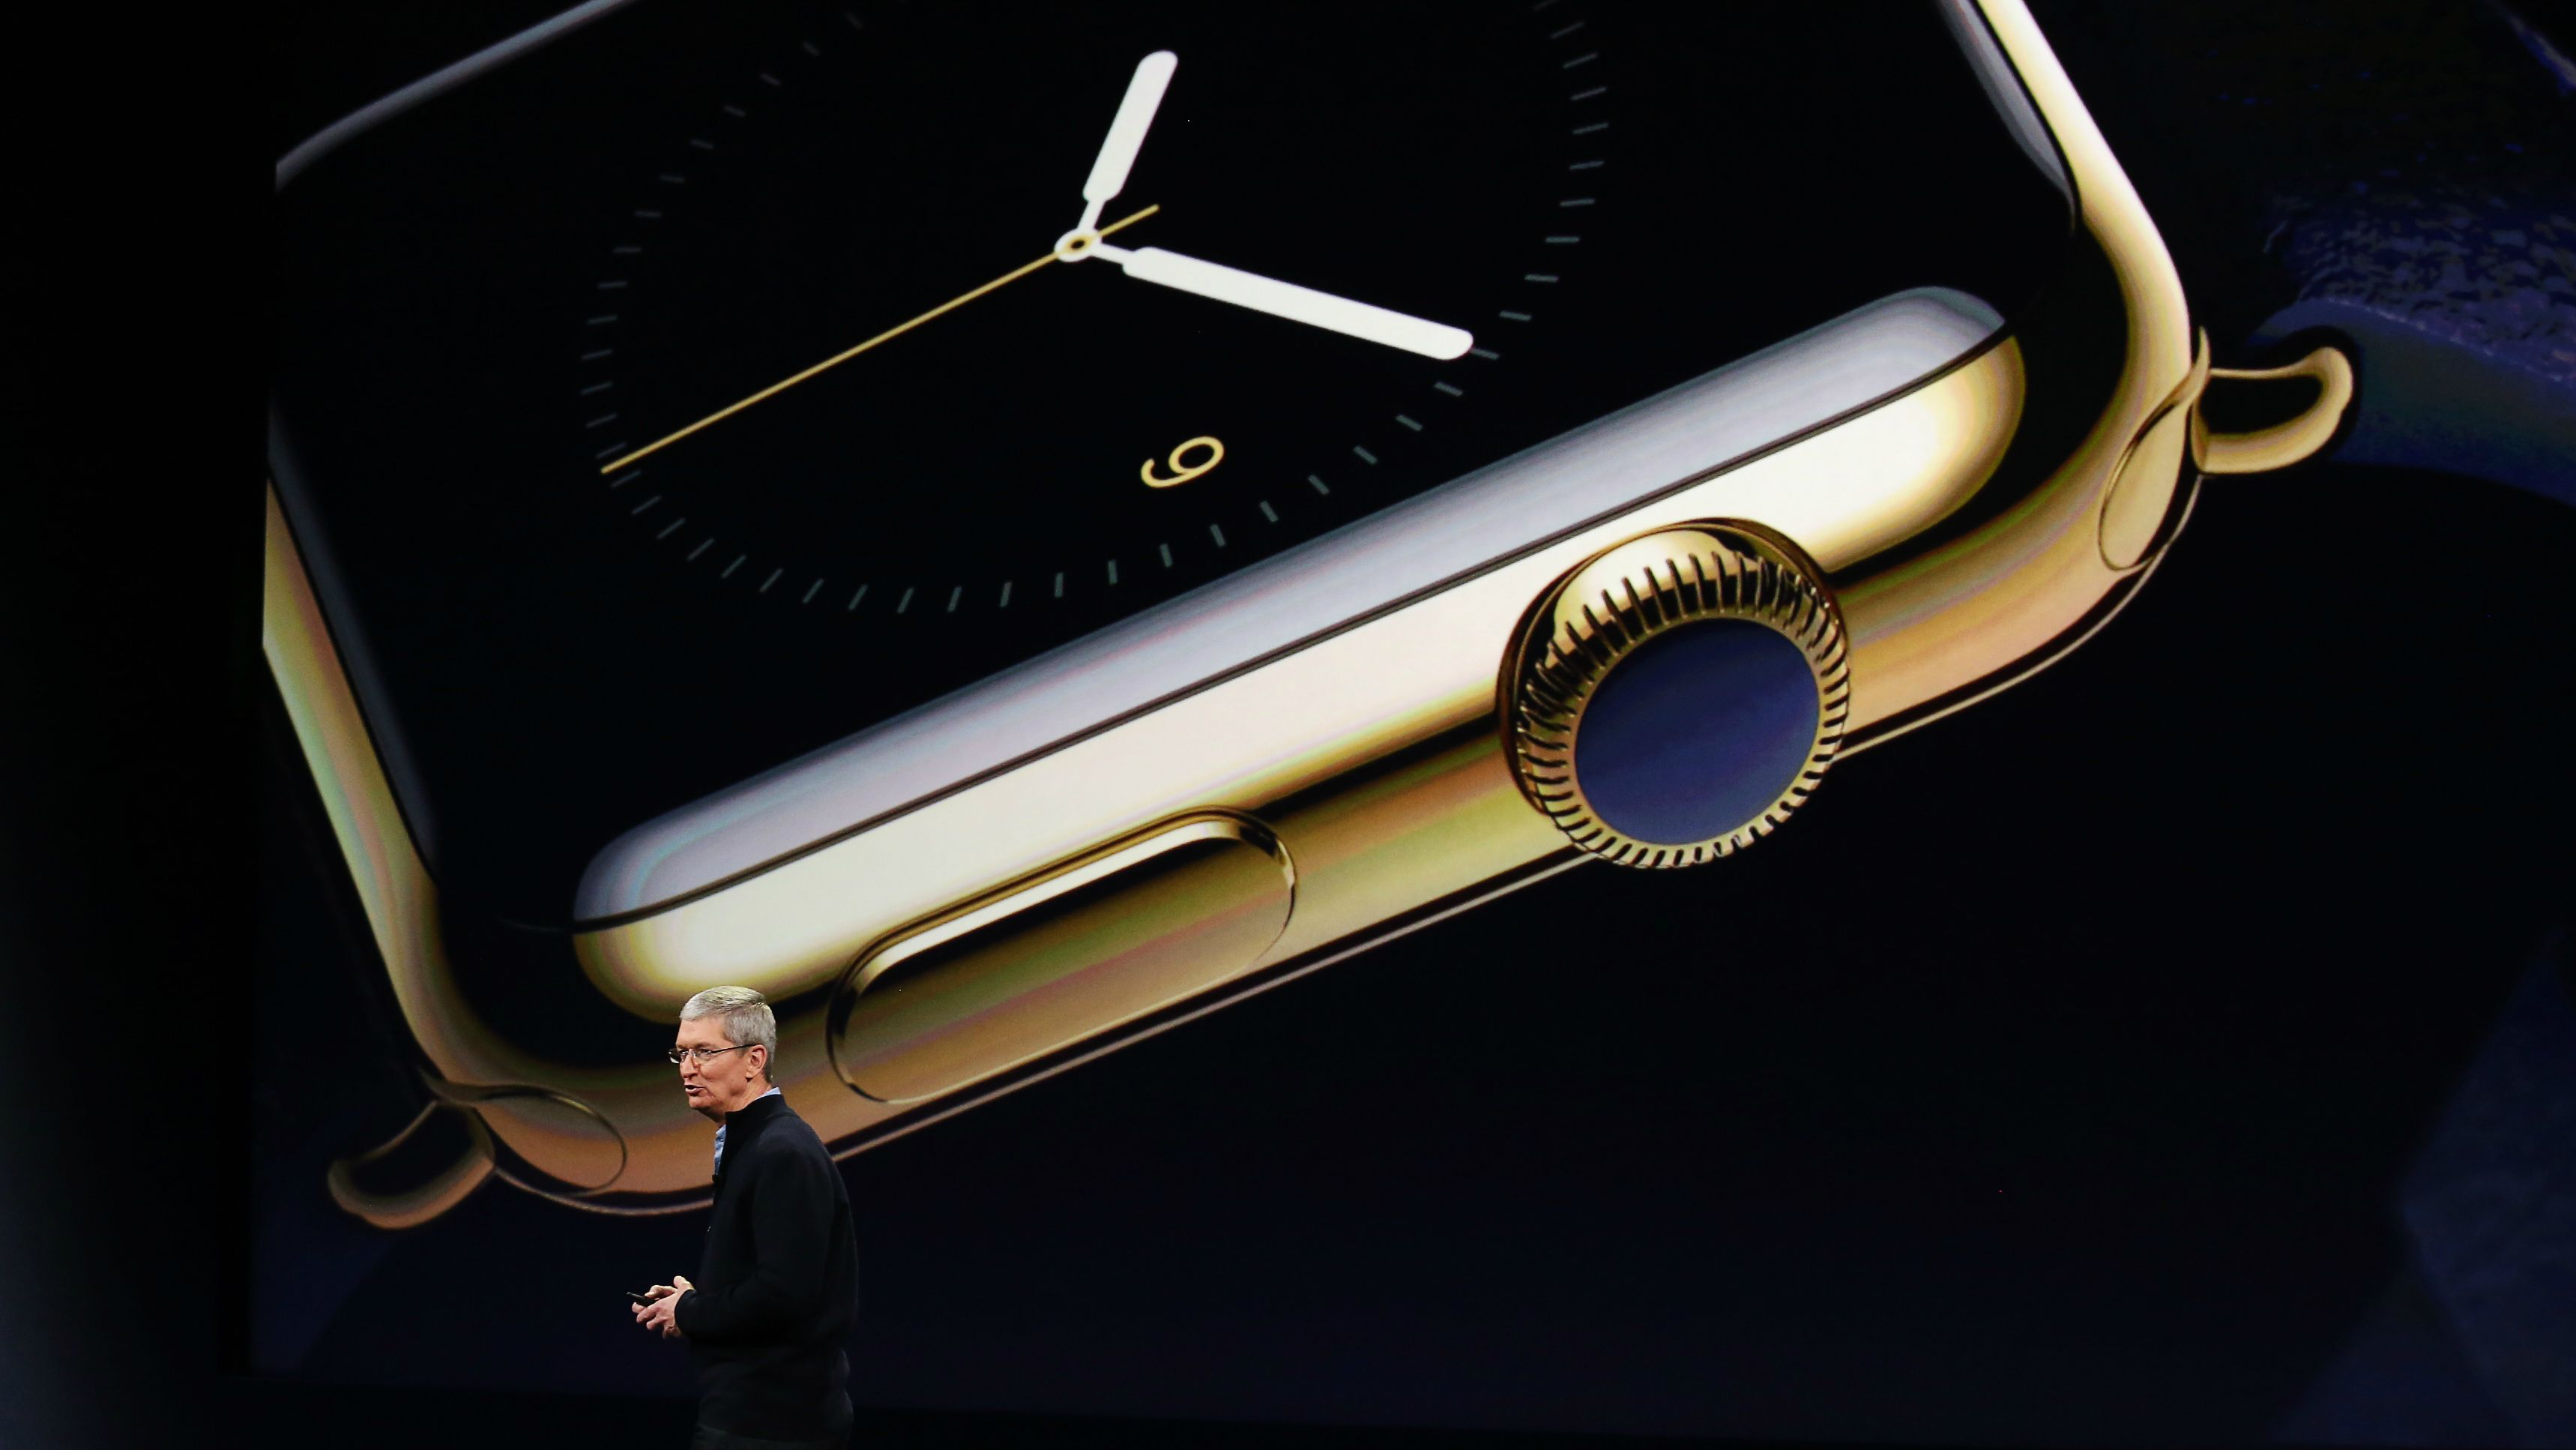 Tim Cook showing gold Apple Watch at company event.